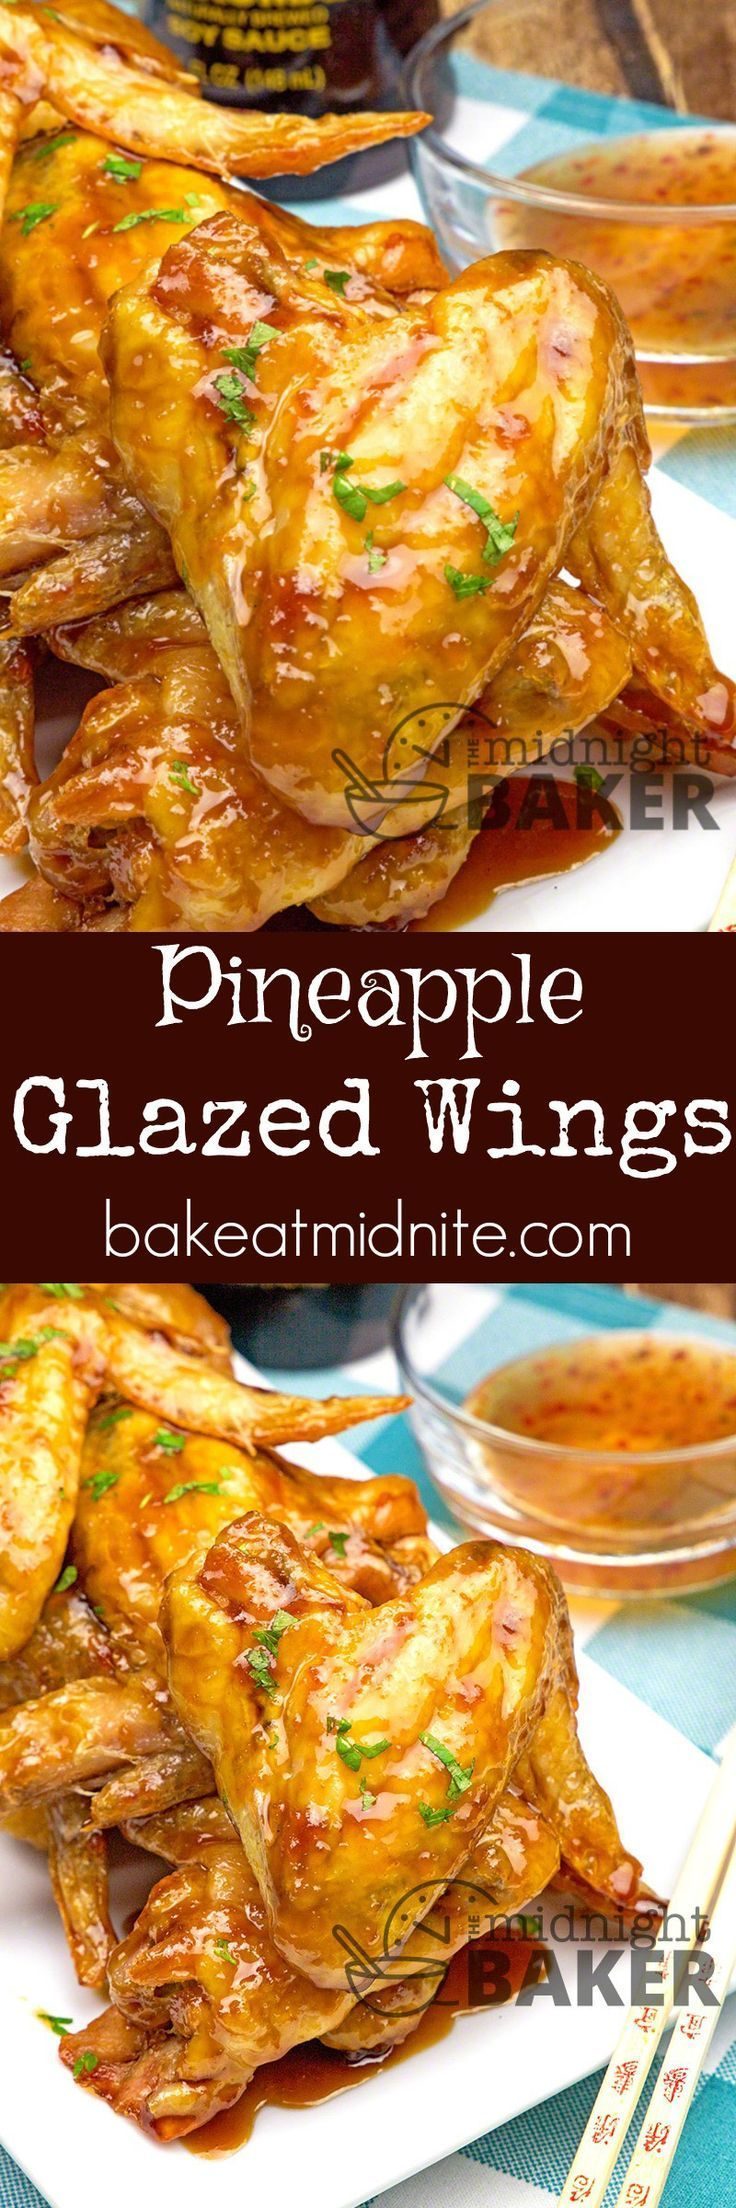 Pineapple Glazed Wings - a sweet and sour pineapple glaze makes this wings finger lickin' good! Great for holiday appetizers! : bakeatmidnite